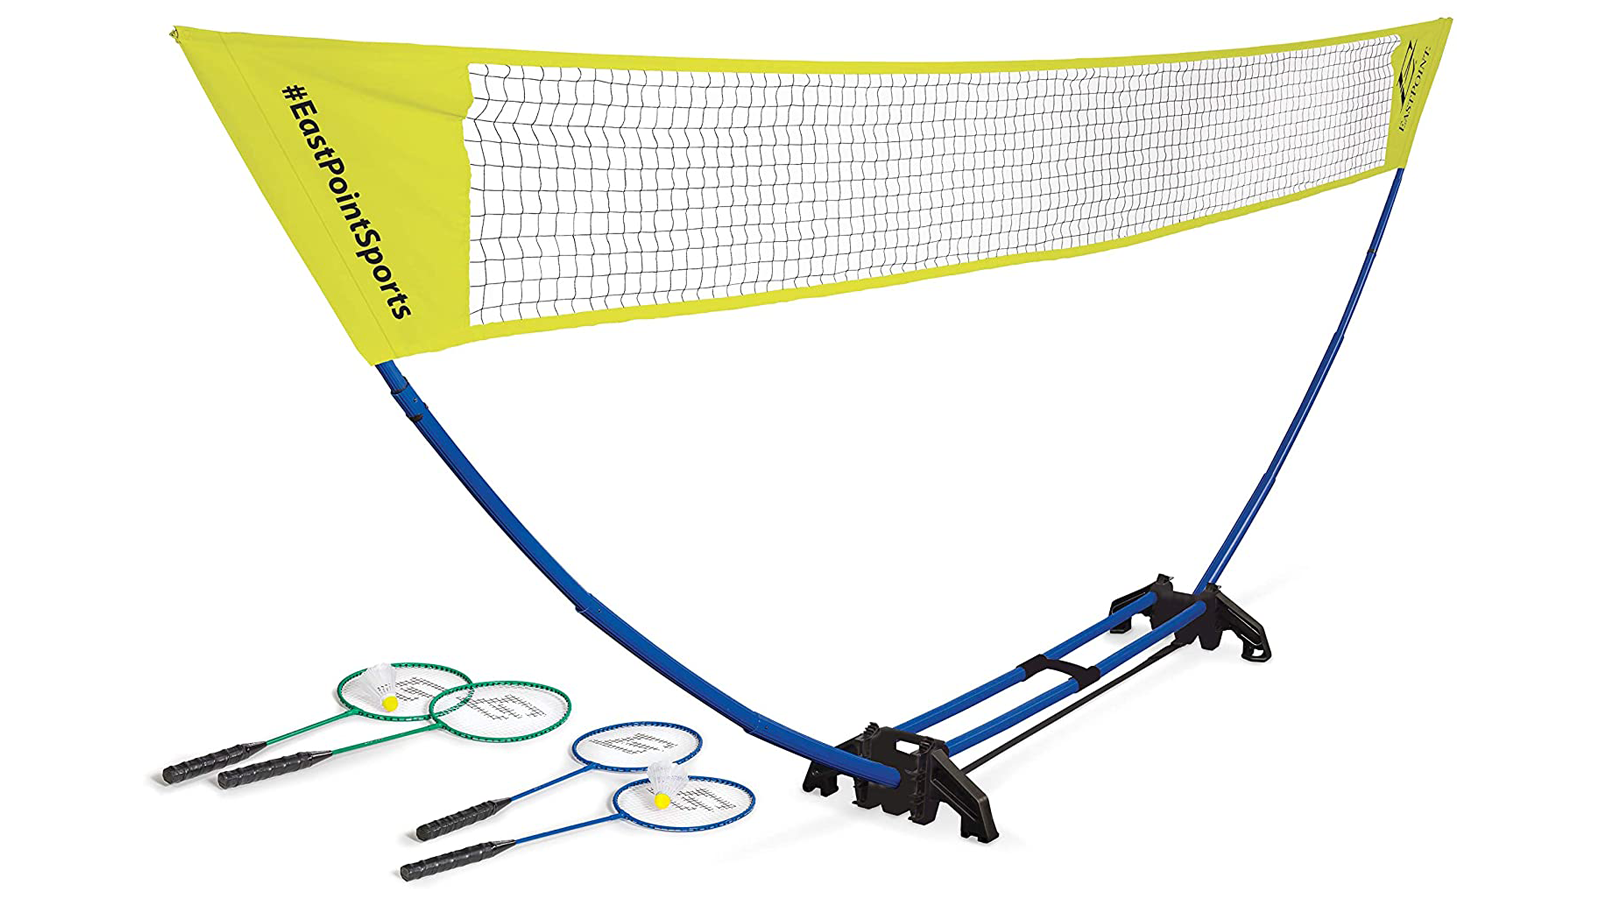 A badminton game setup with a net, rackets, and shuttlecocks